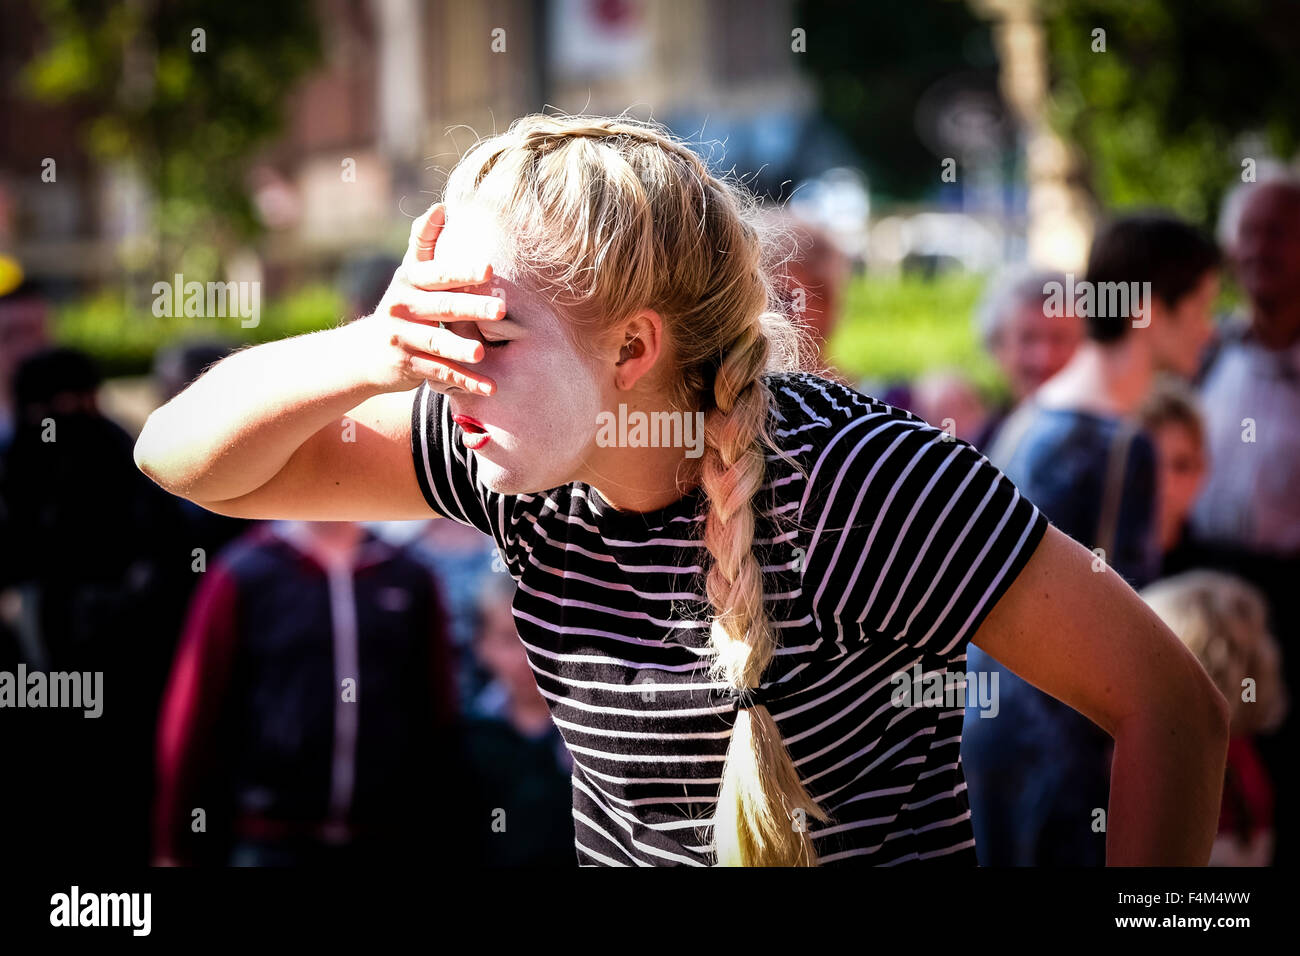 Female mime artist expressing tension Stock Photo